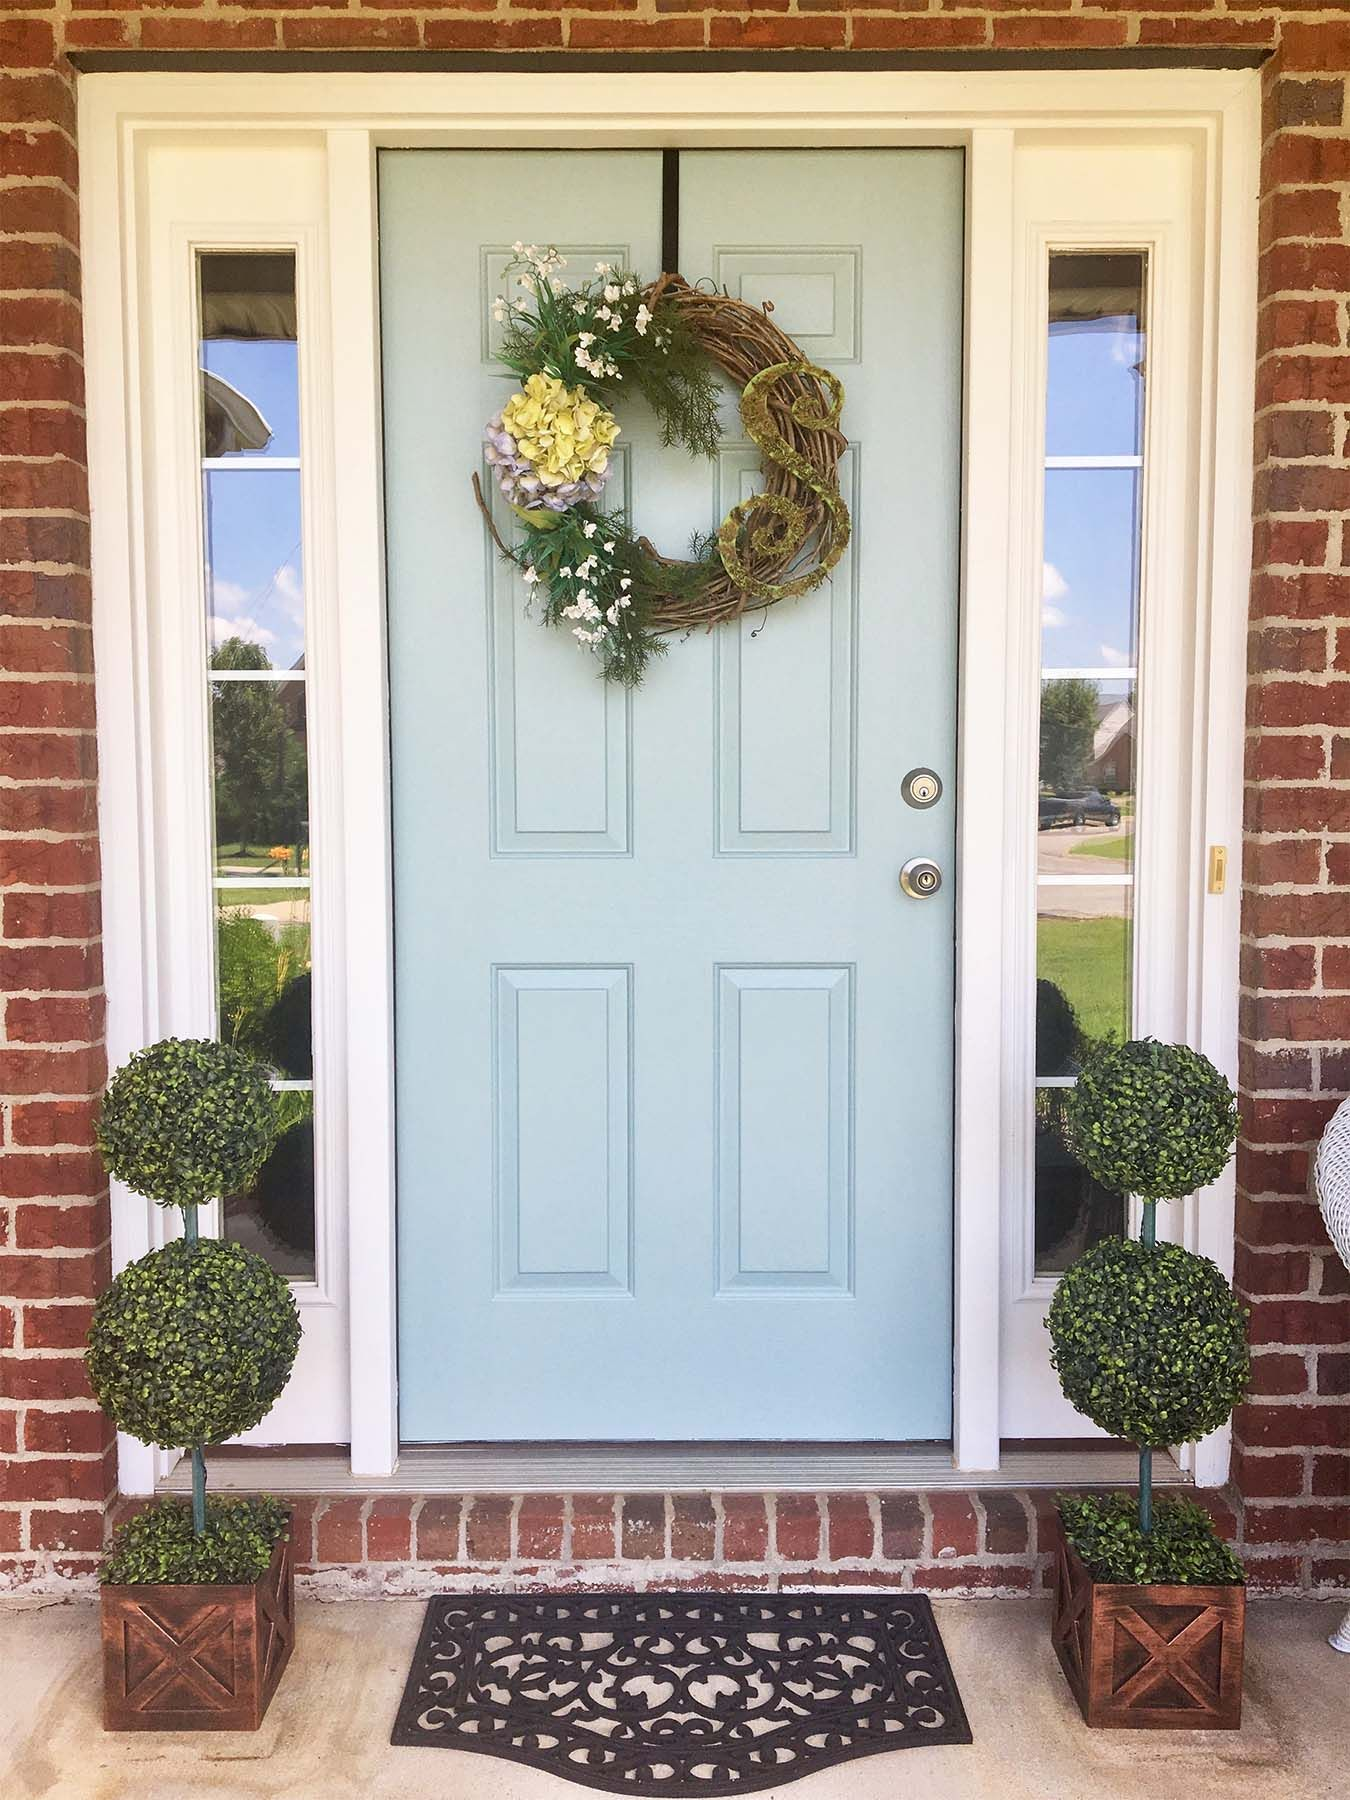 Light blue front door with wreath. Red brick house. Porch plants.